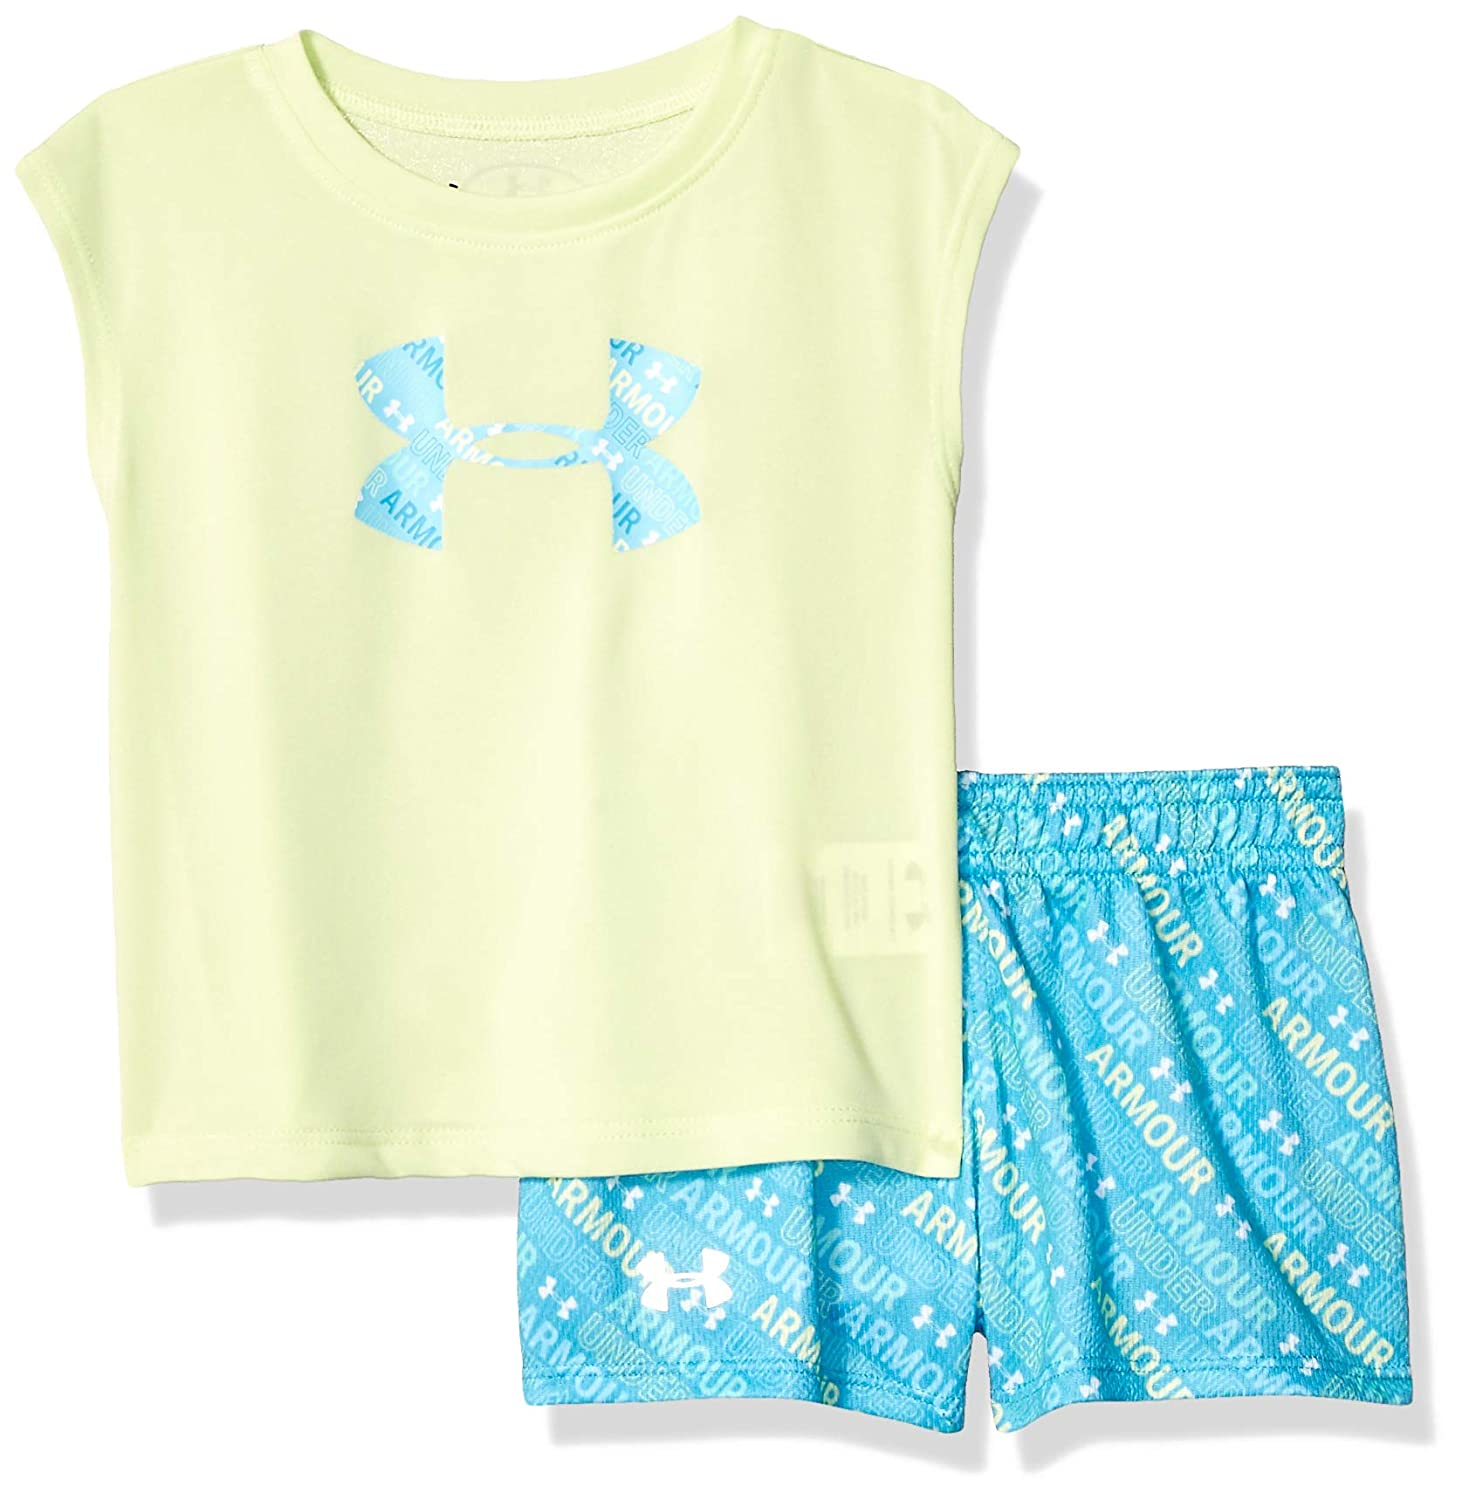 ff2d23ae1b Under Armour Baby Girls' Lumos Tee and Shorts 2 Piece Set